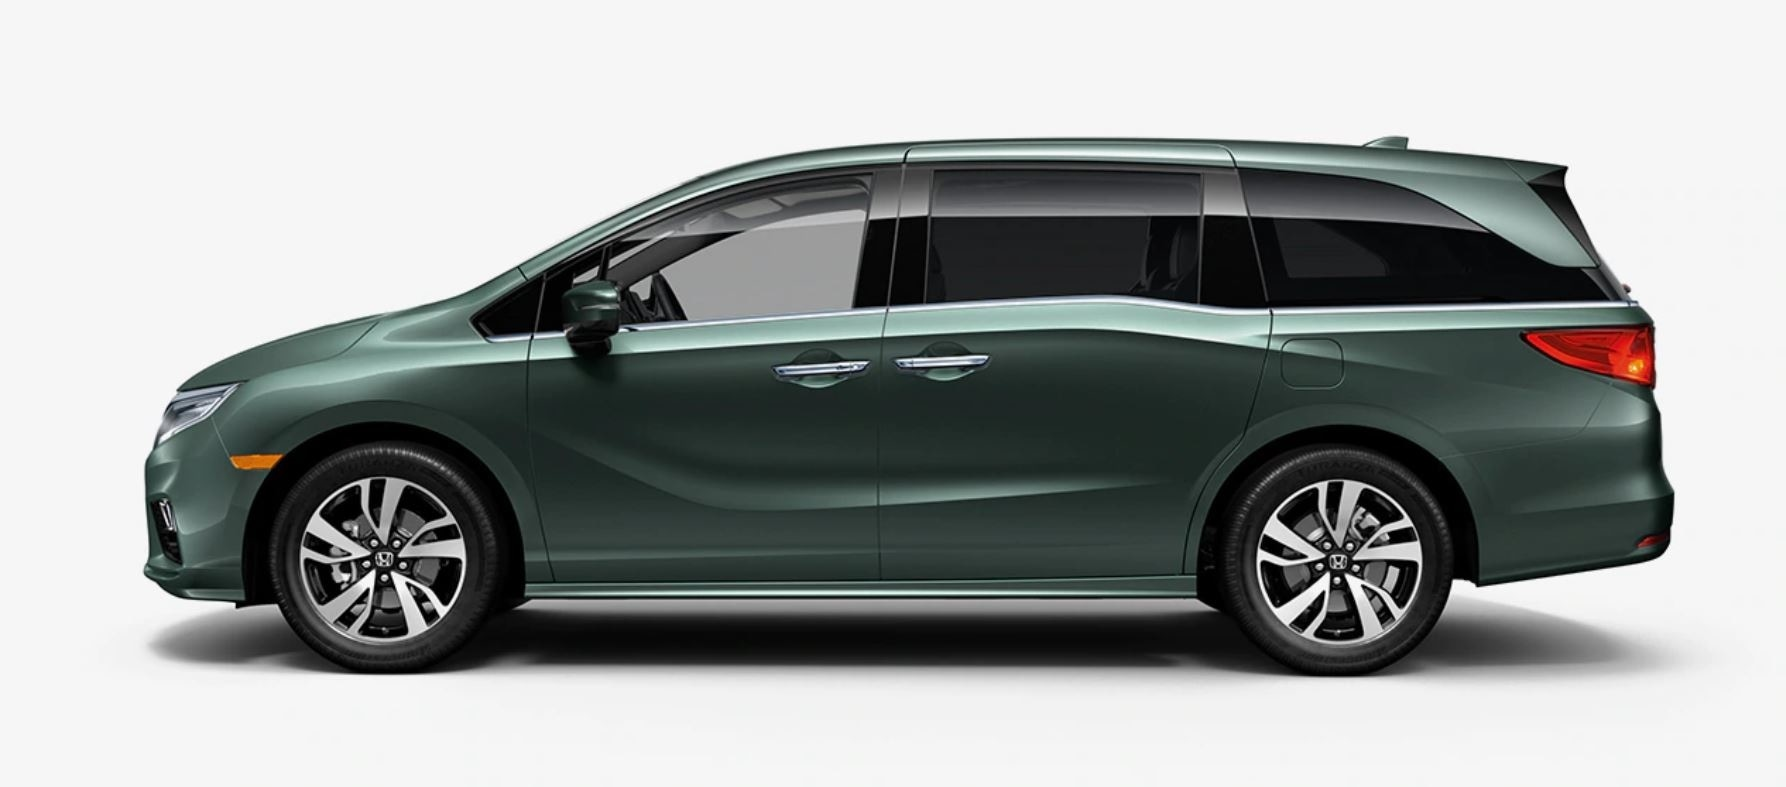 Lease the 2020 Honda Odyssey near Macomb IL